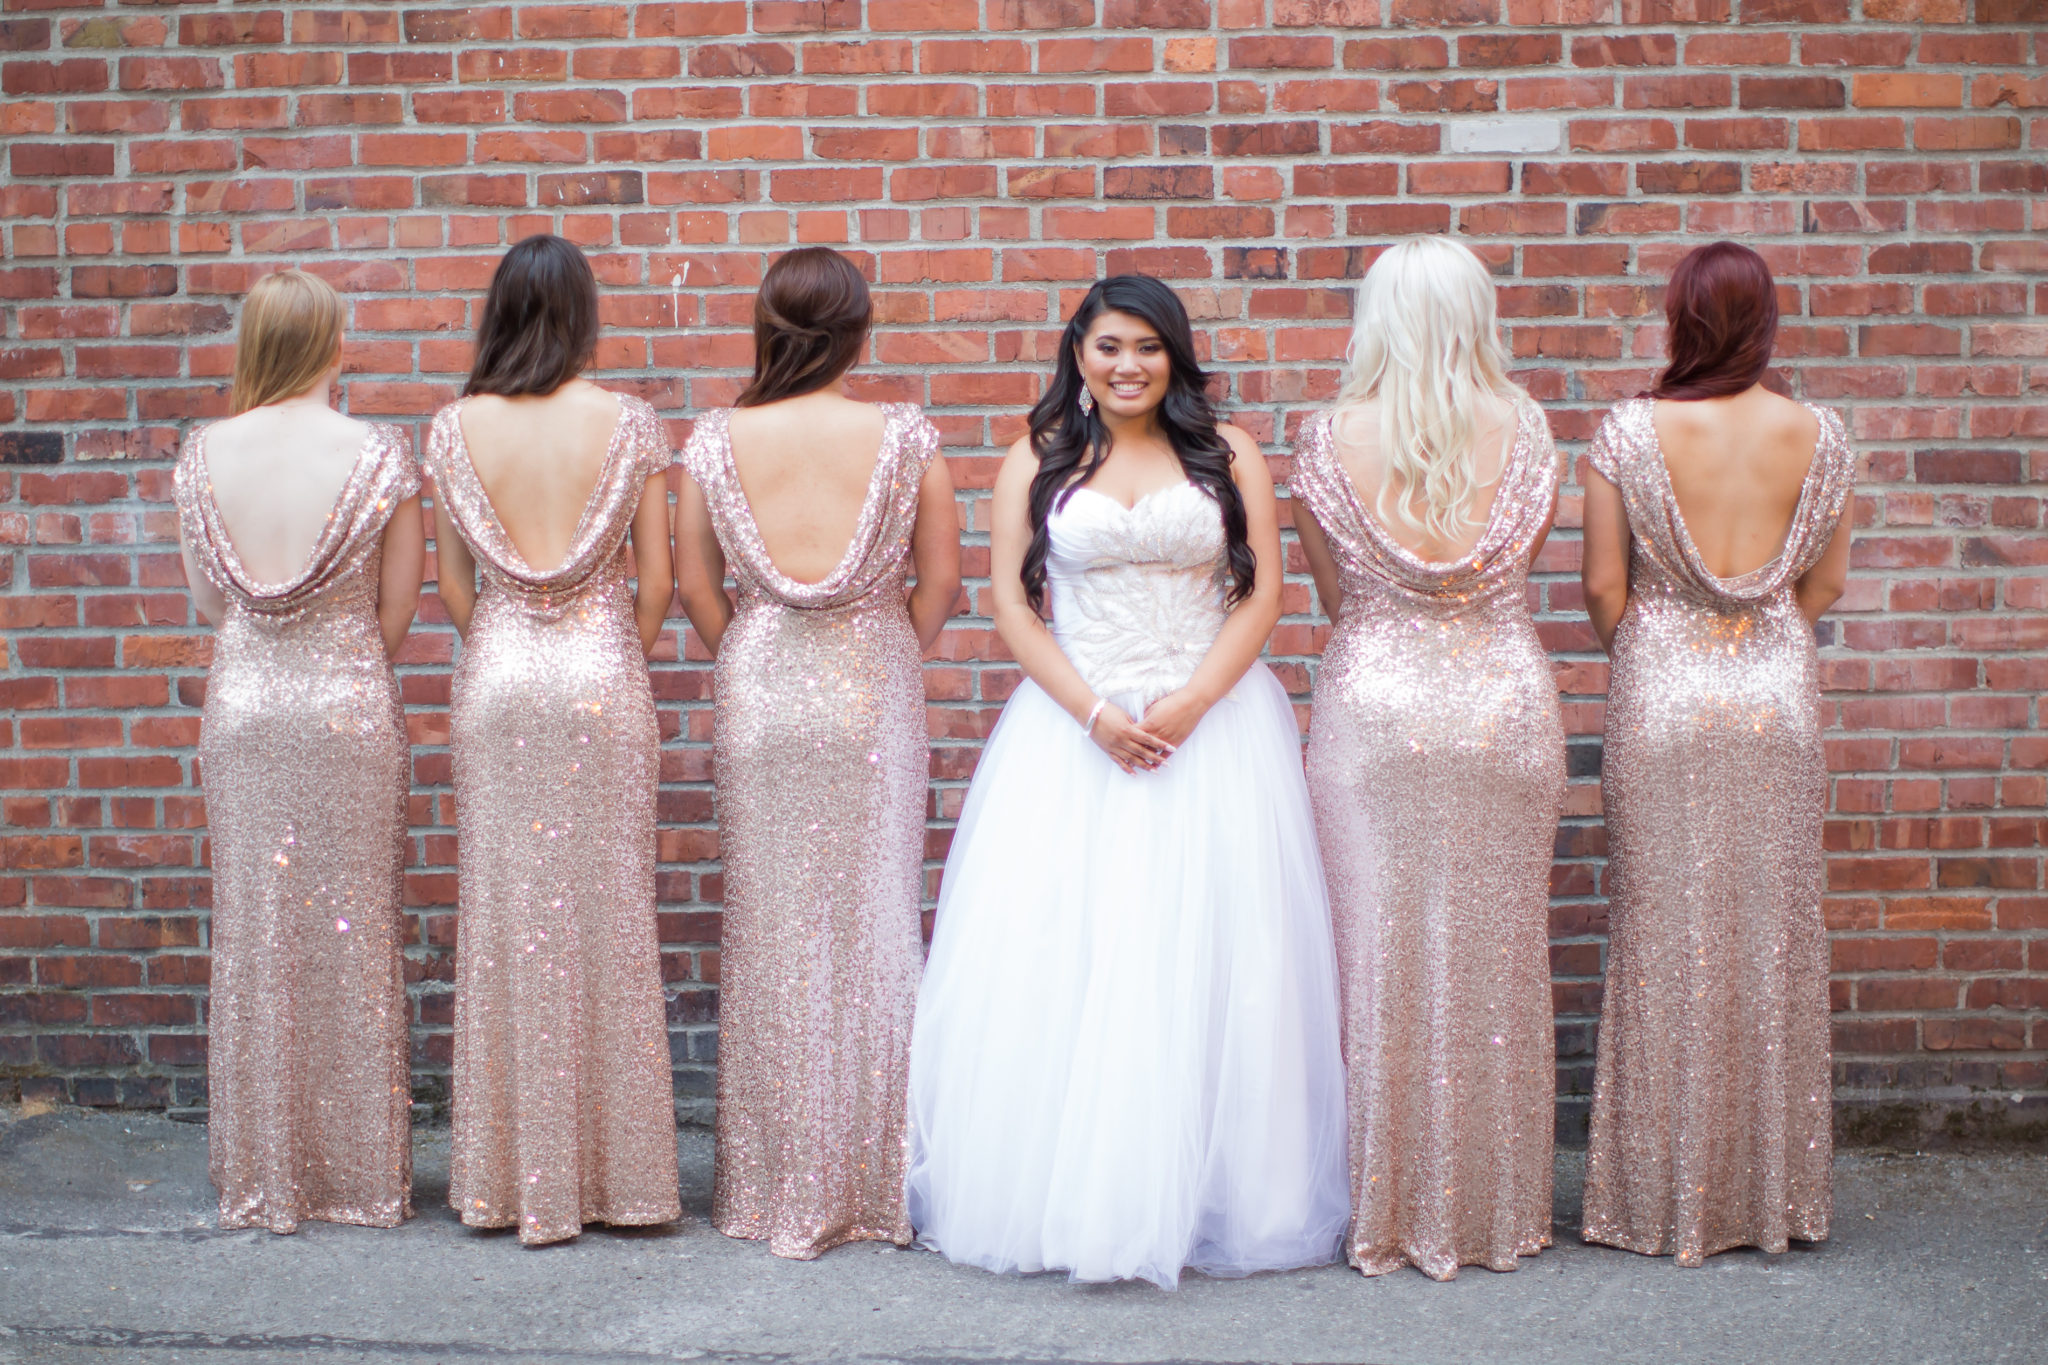 Aleshchenko Bridesmaids Photos 3 GLAM MONTE CRISTO BALLROOM WEDDING | EVERETT WEDDING PHOTOGRAPHER